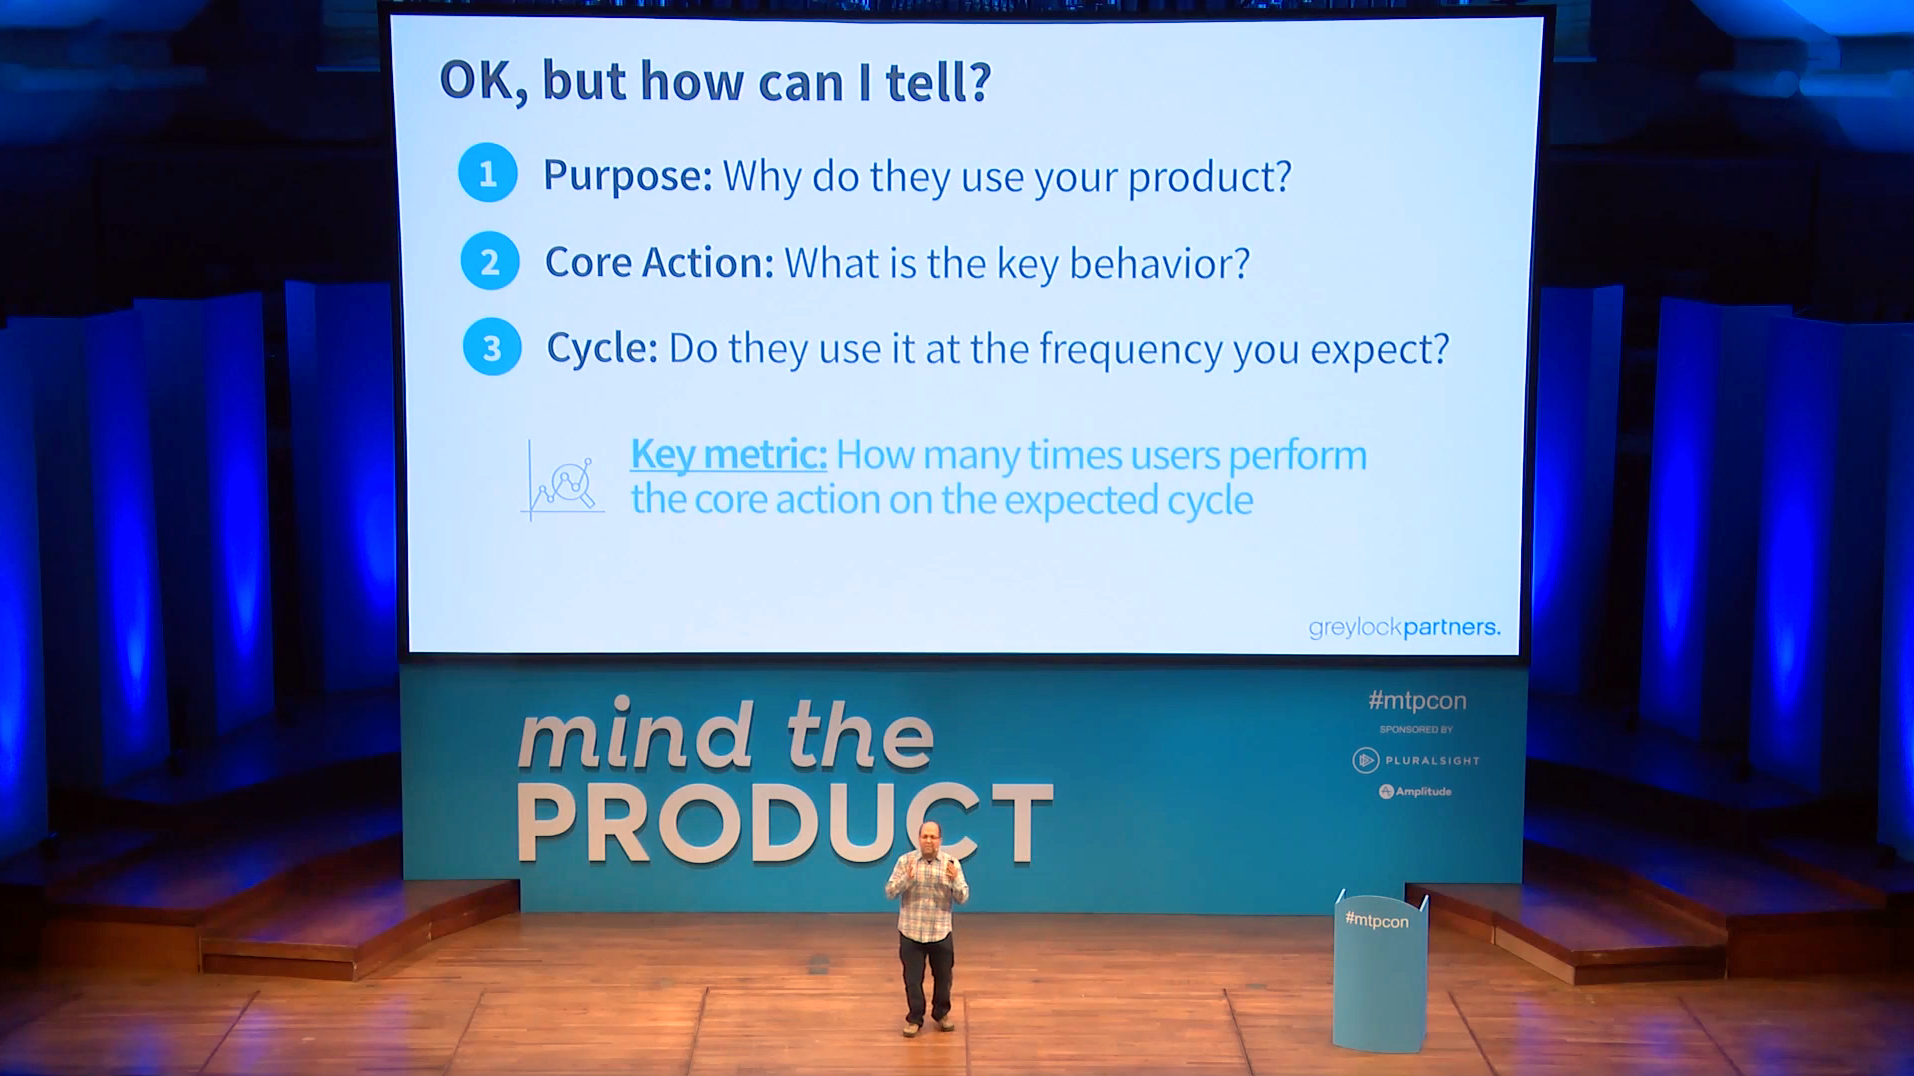 Video: The Only Product Metric That Matters